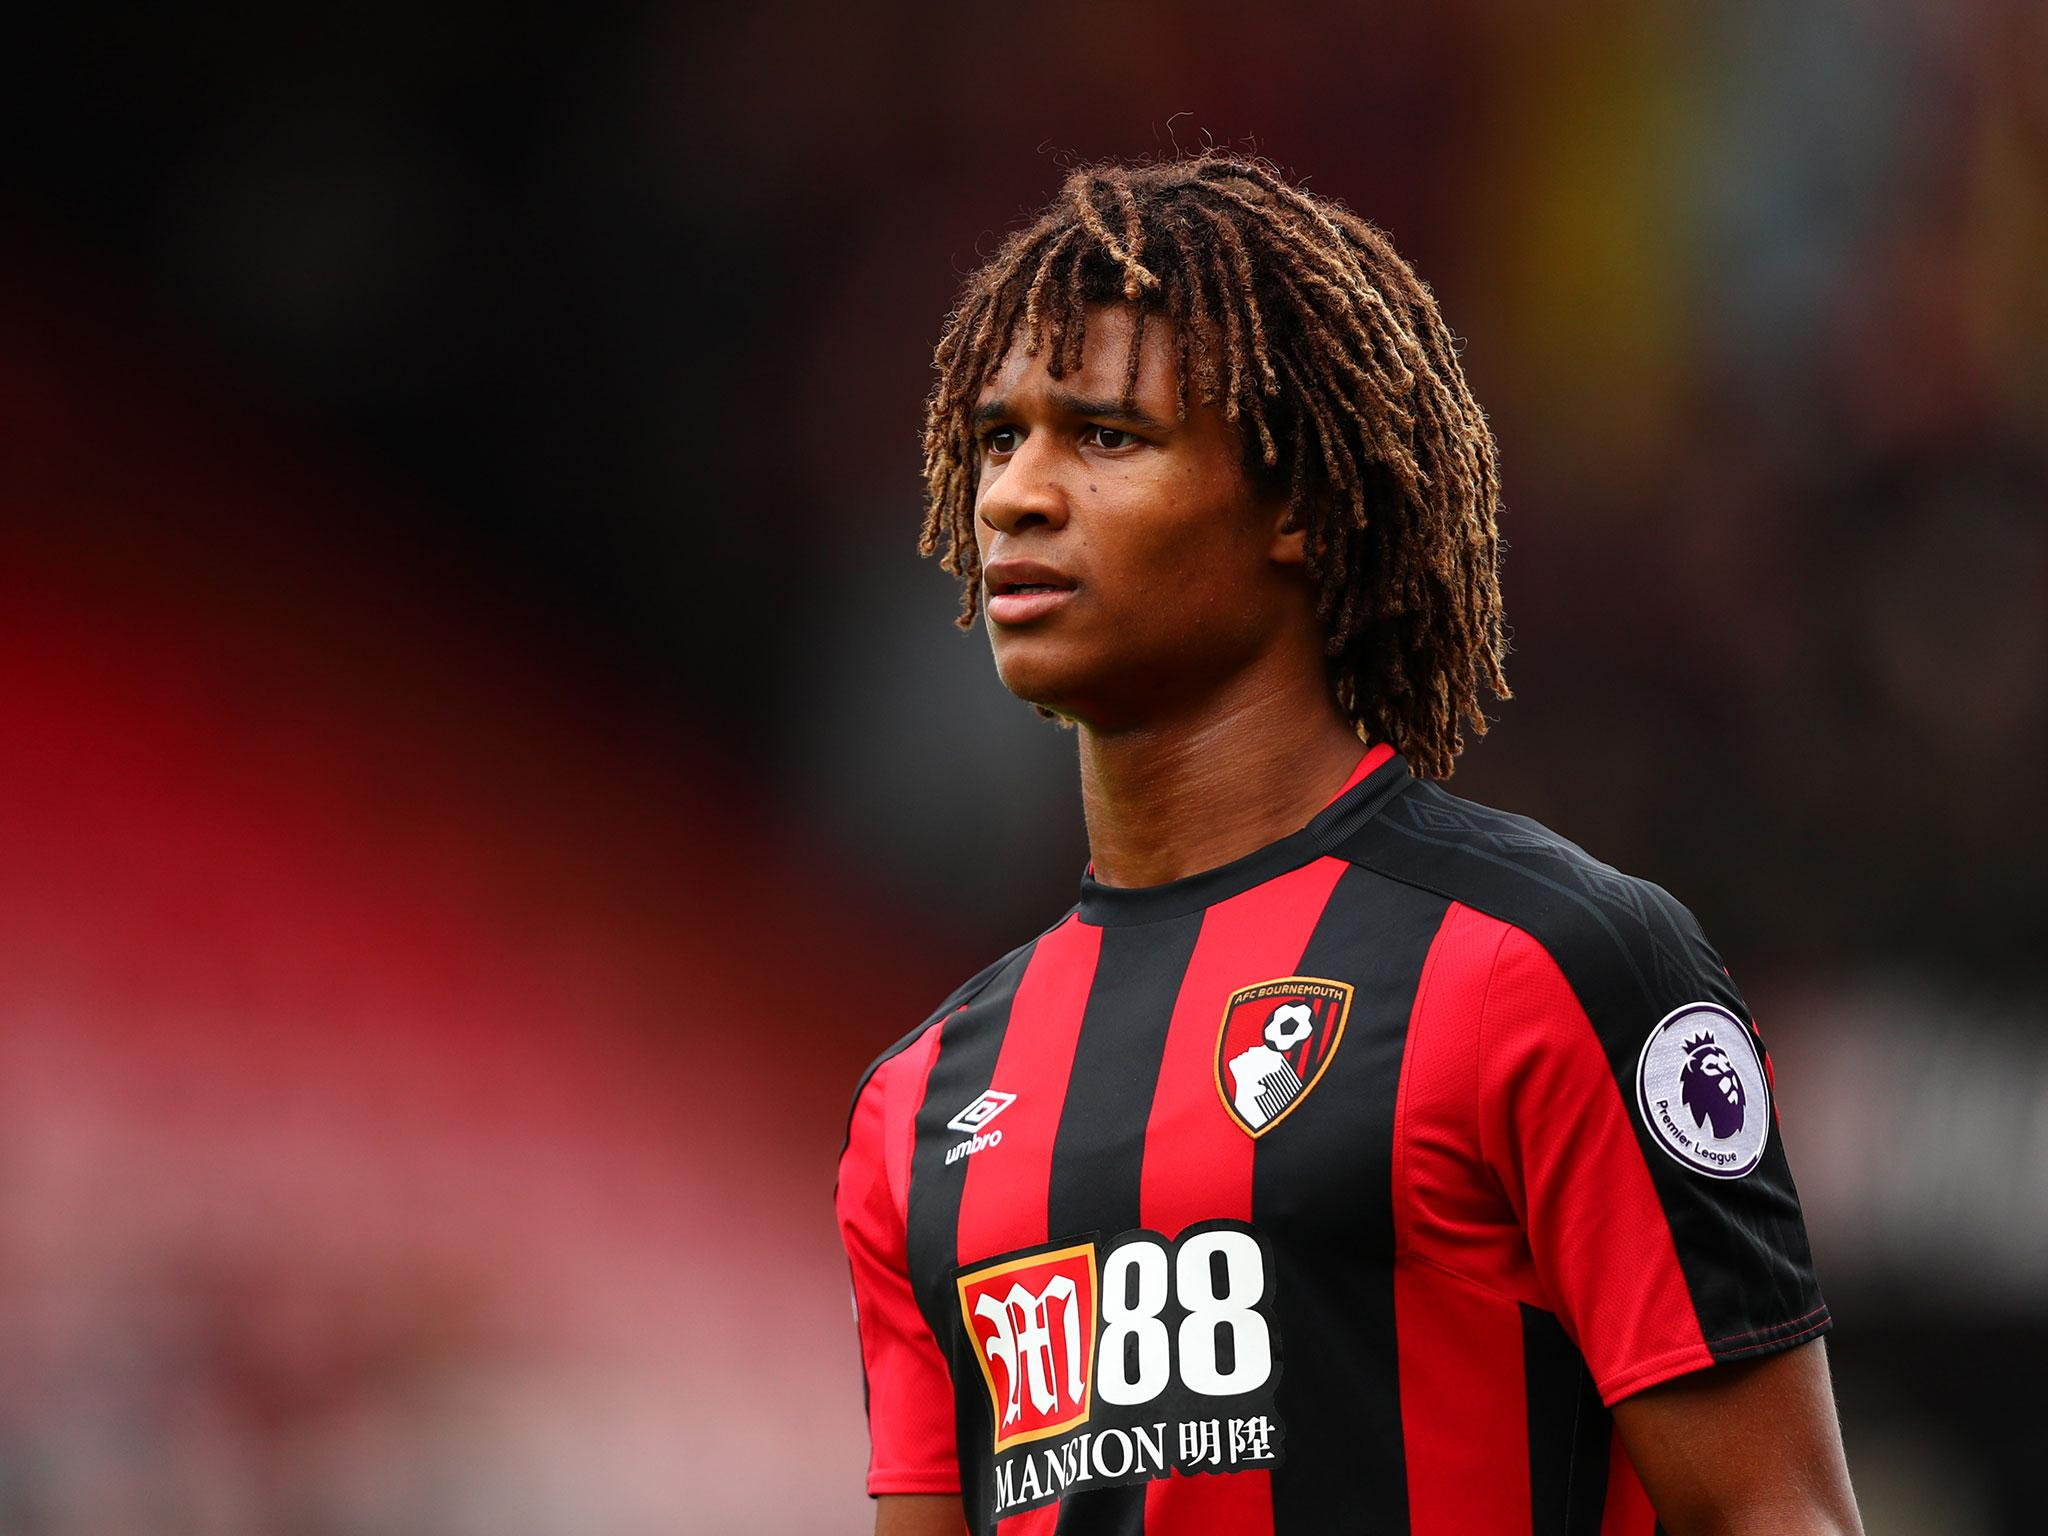 ake. nathan ake defends decision to join bournemouth after antonio conte brands chelsea youngsters impatient | the independent v